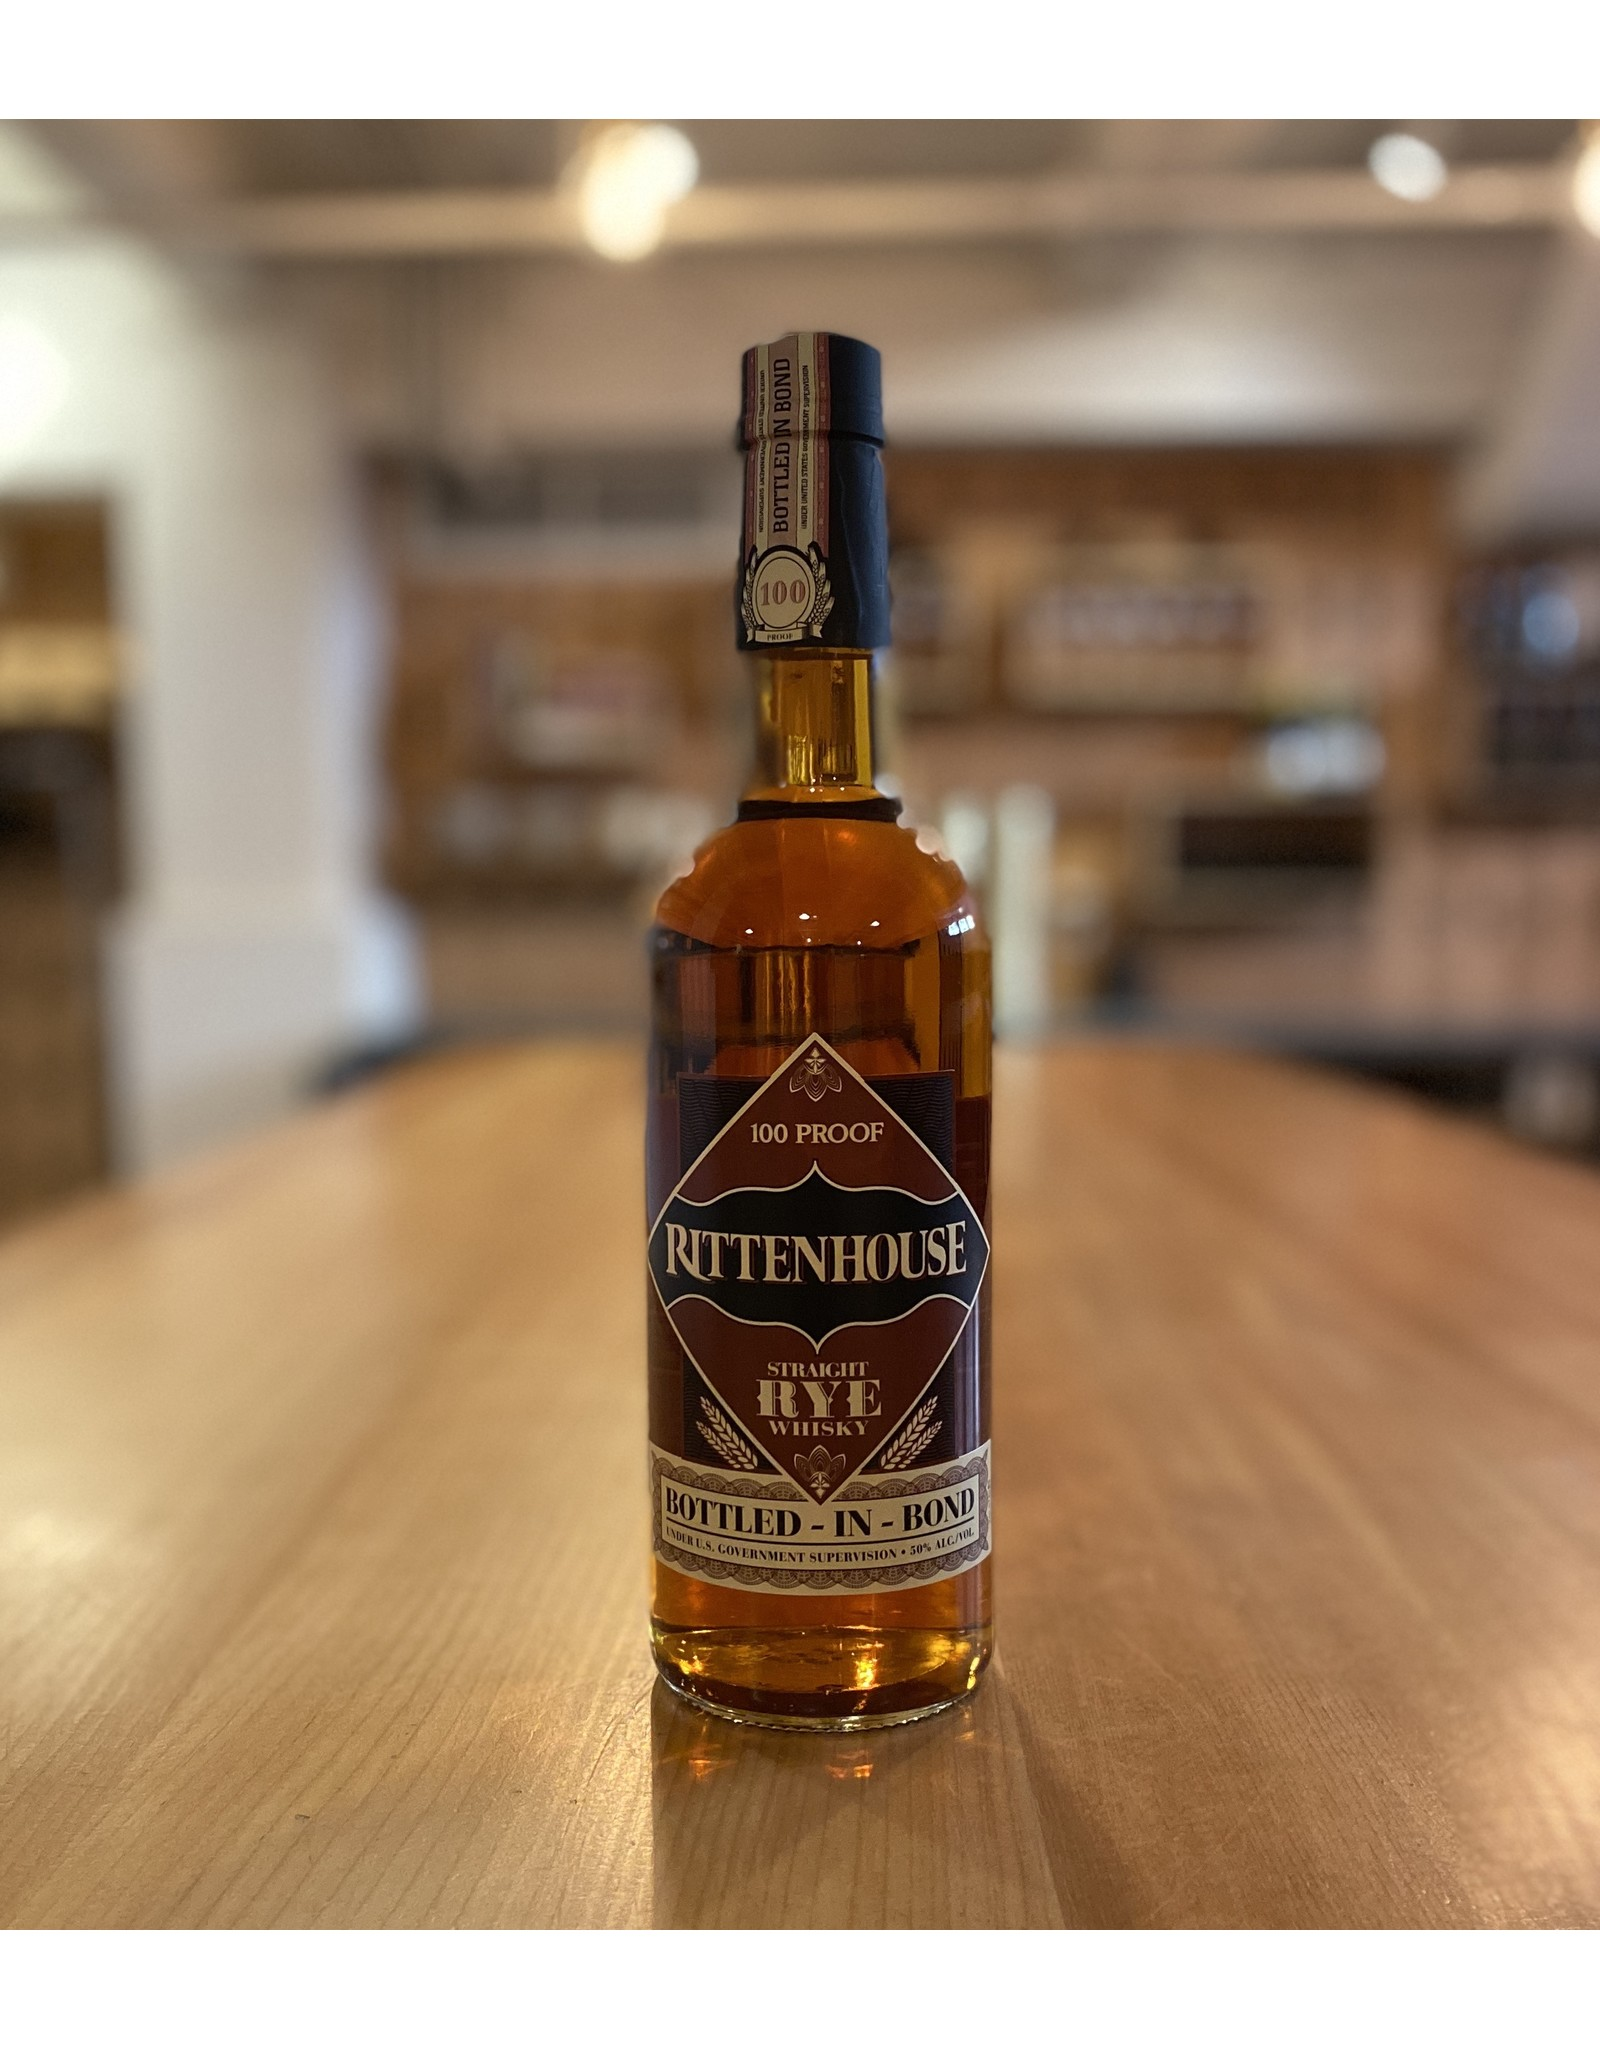 Rye Rittenhouse 100 Proof Rye Whiskey 750ml - Kentucky